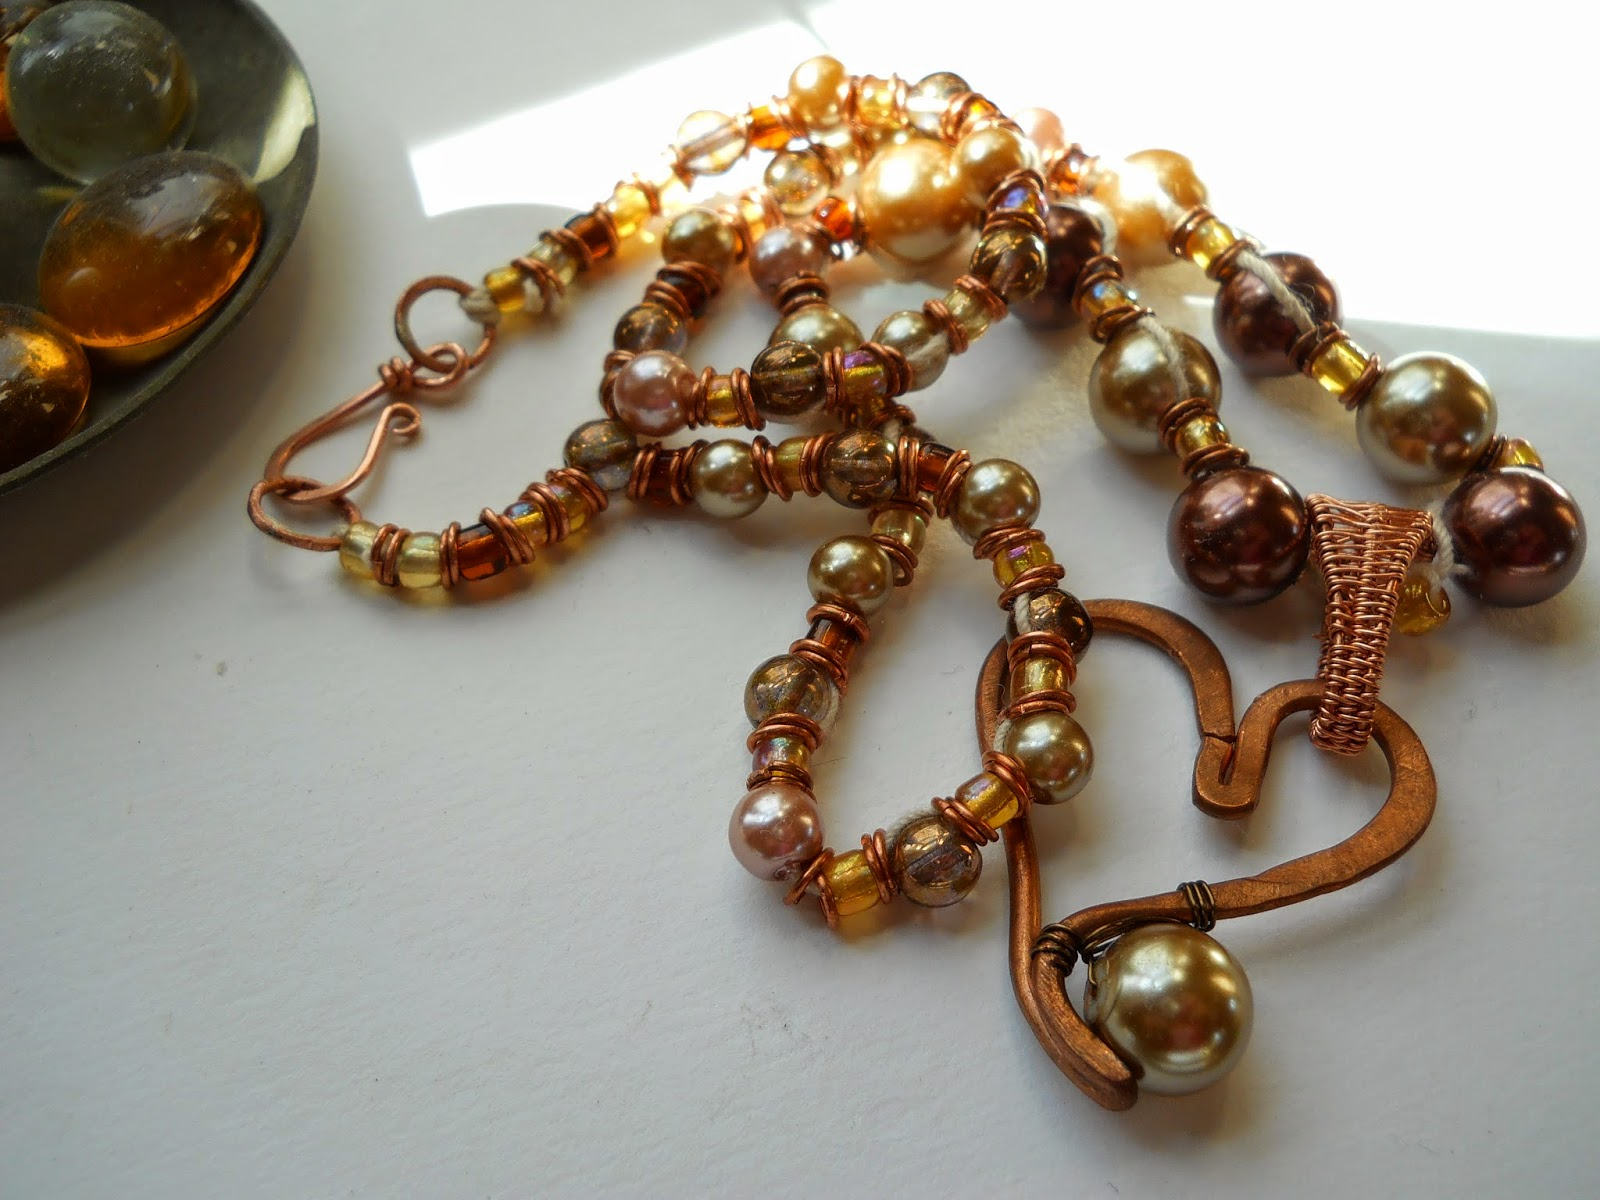 Glass beads and Pearls in warm rich coppery tones with copper accents and copper heart pendant.